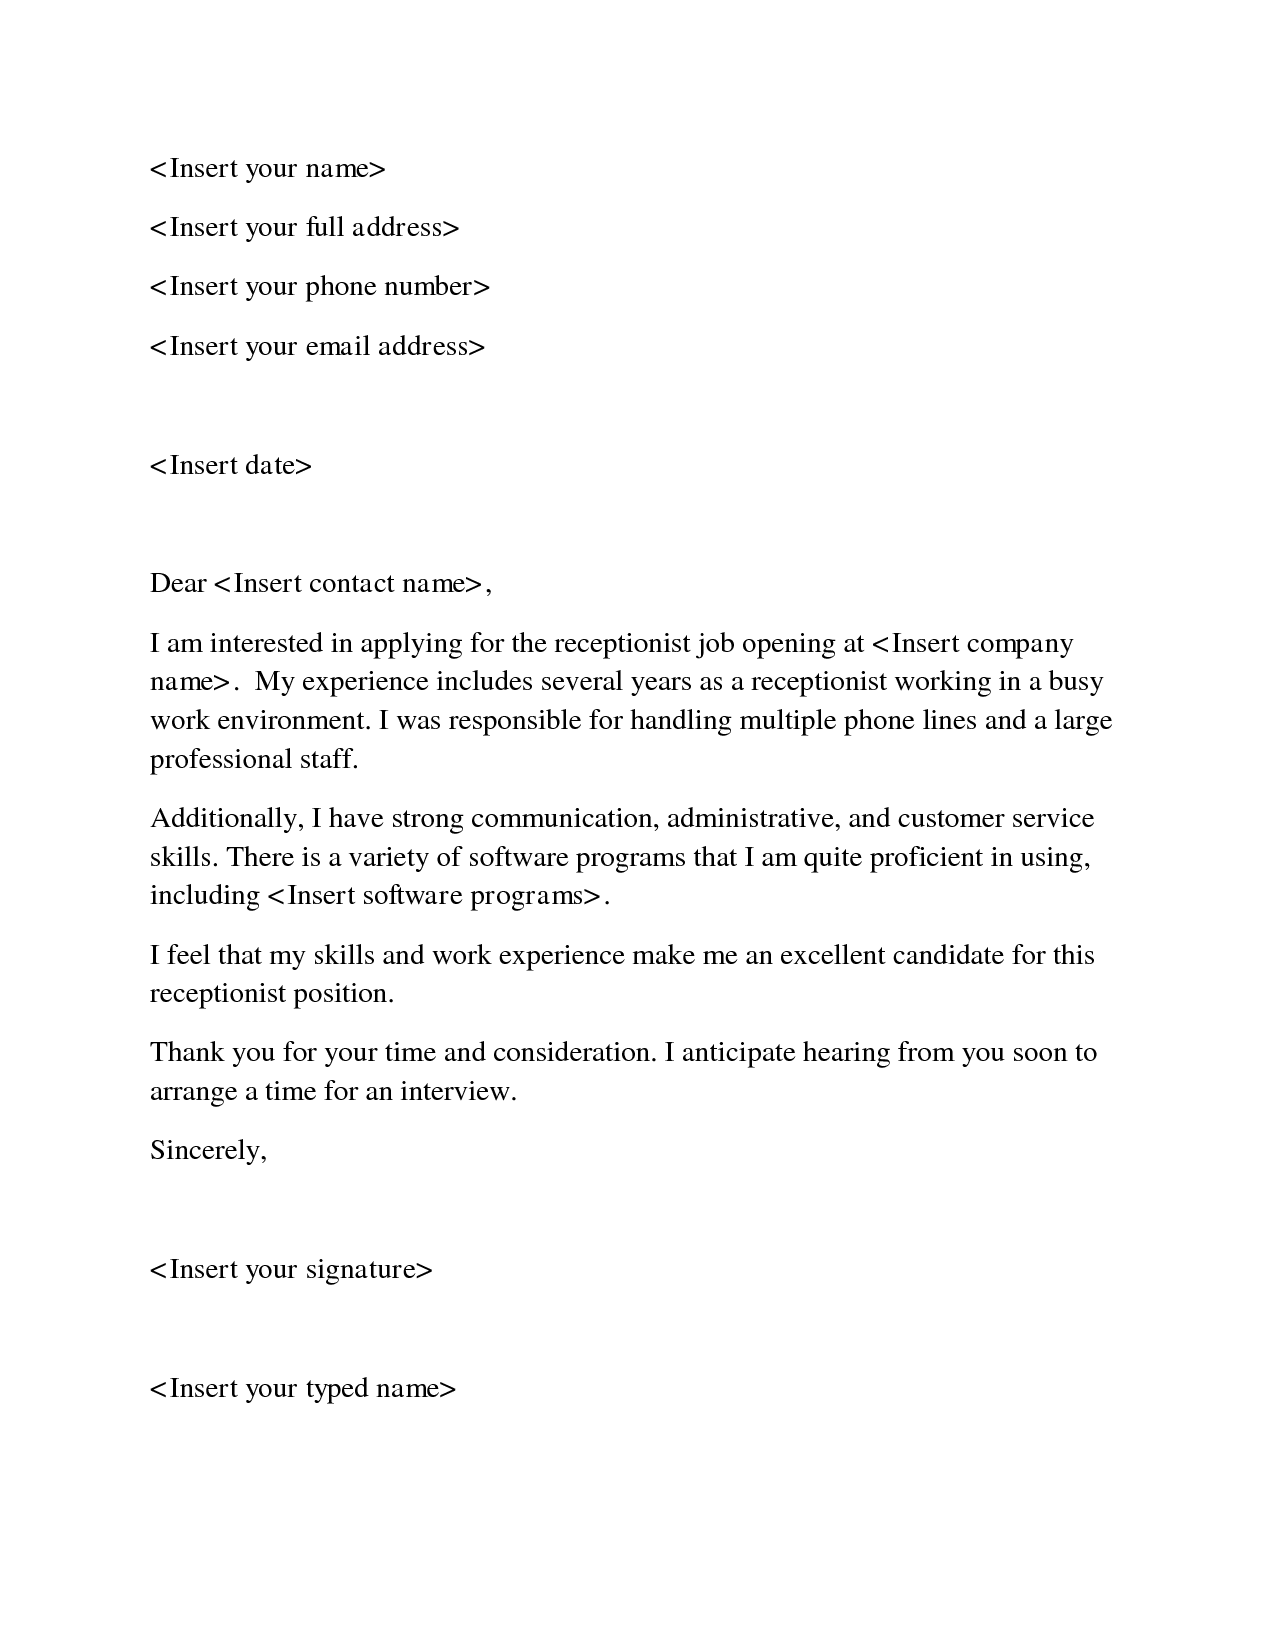 job application letter sample uk